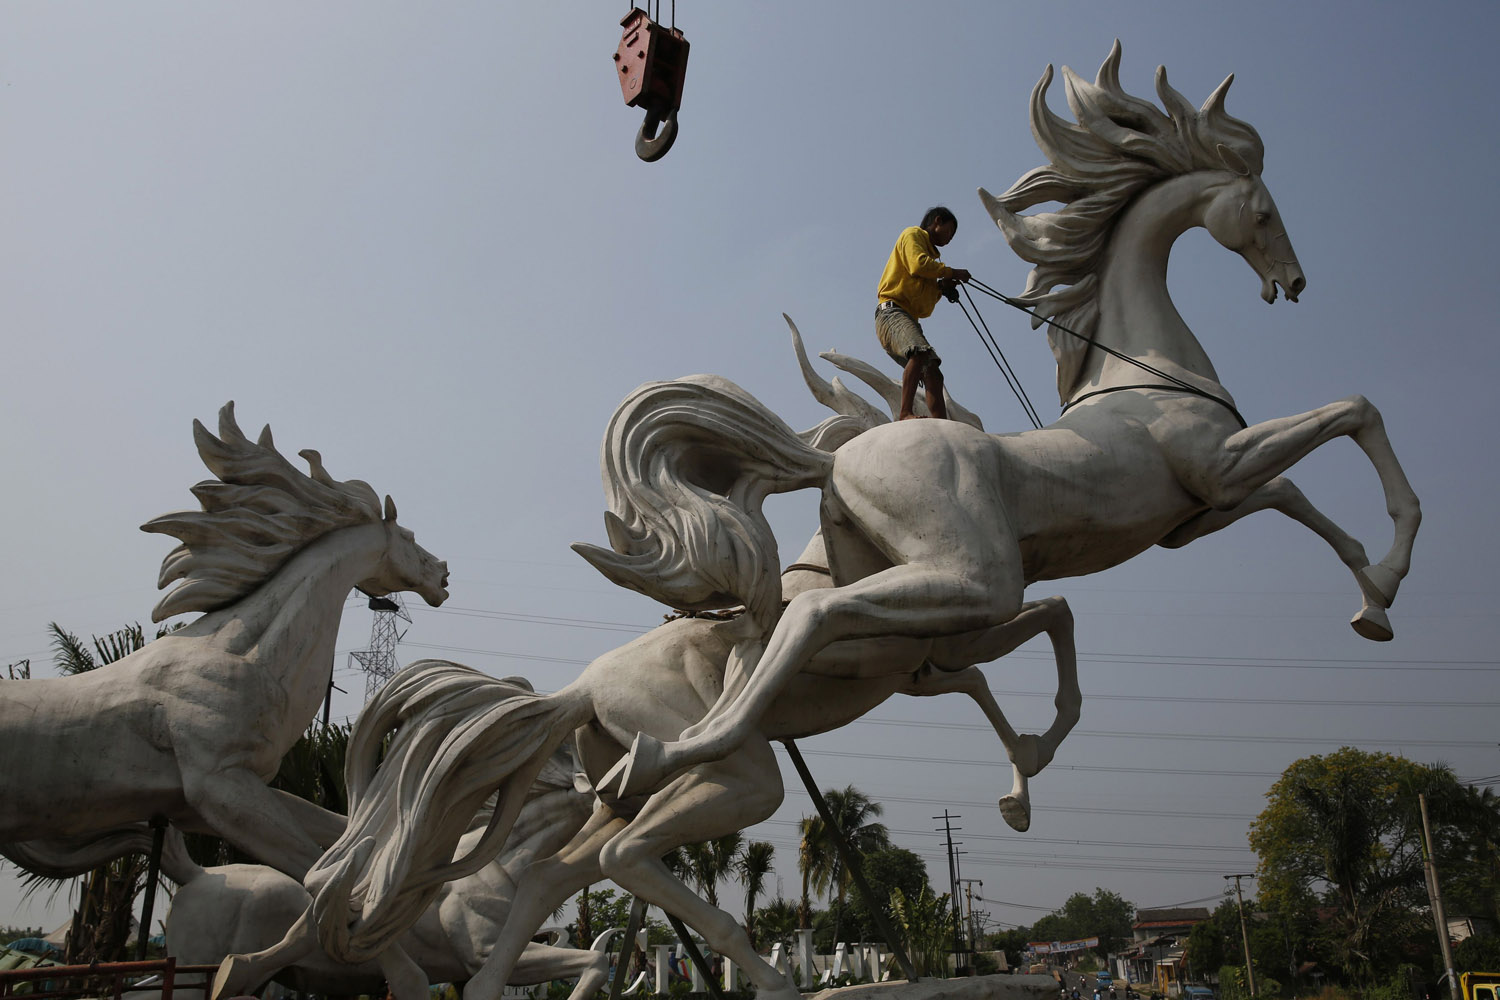 Sept. 19, 2013. A worker tightens a rope to raise a four-metre-high (13 ft) statue of horses at a new housing complex at Parung village in Bogor, Indonesia's West Java province.